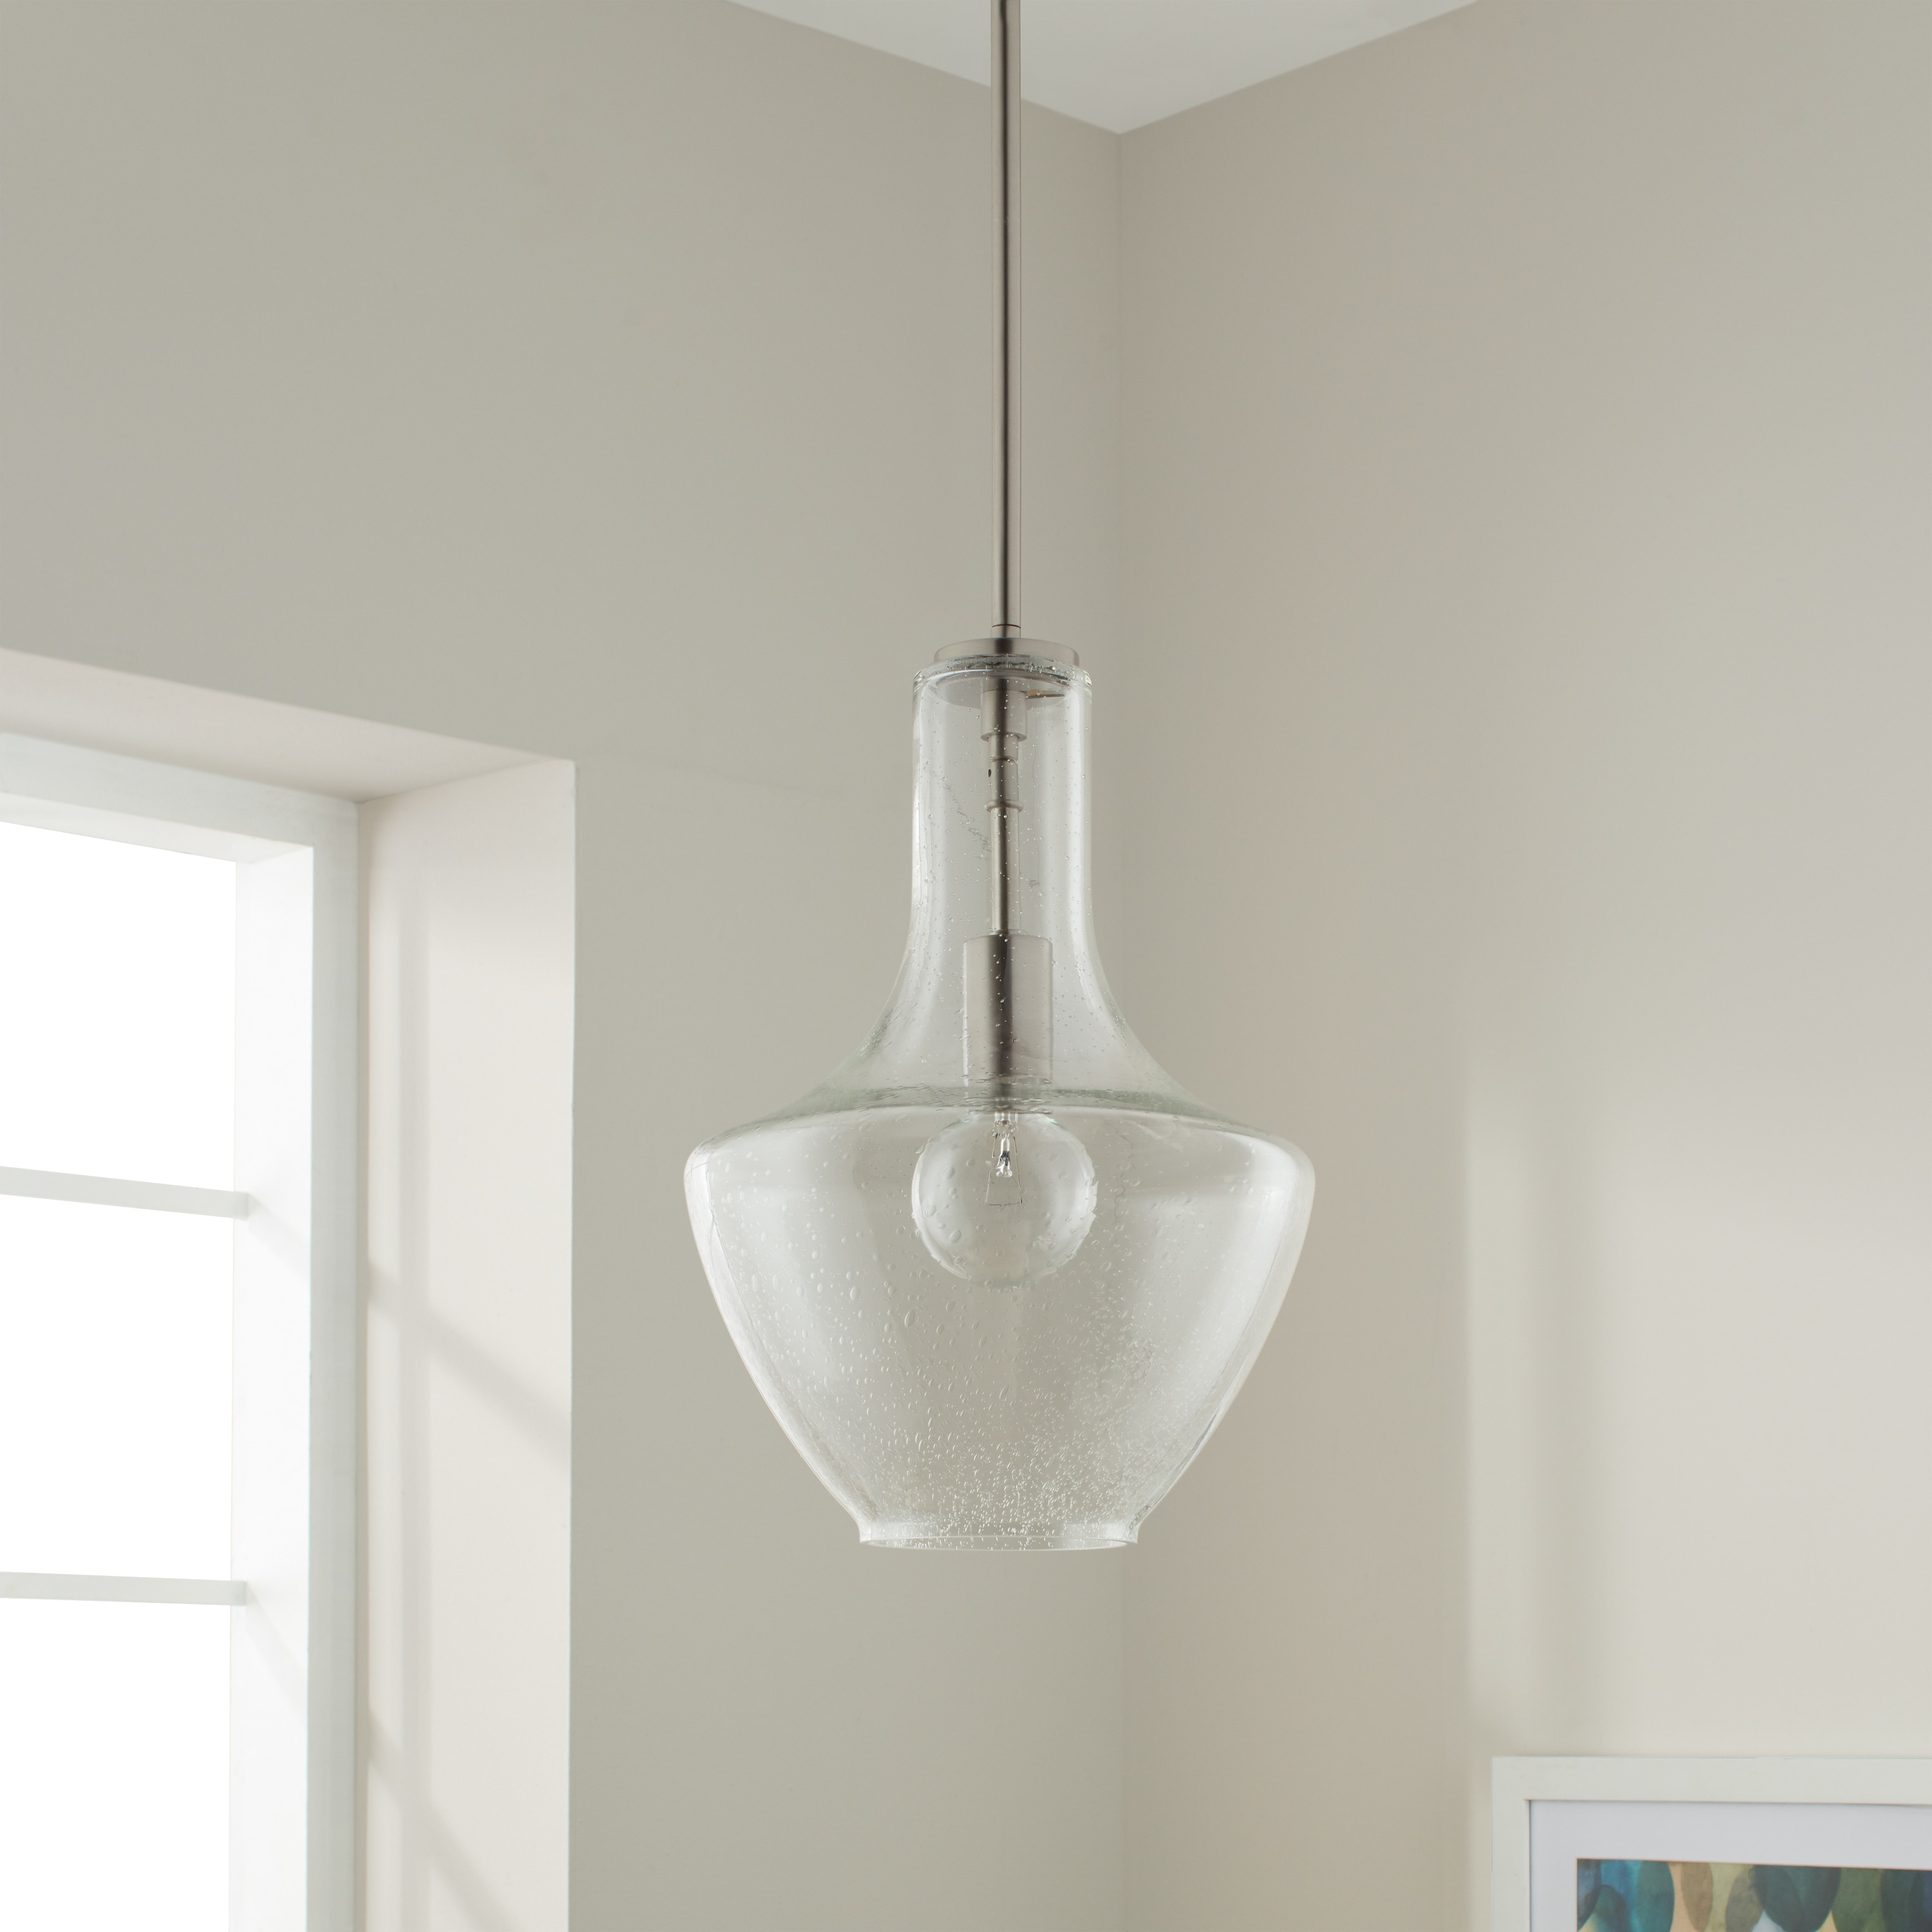 Kichler Lighting Everly Collection 1 Light Brushed Nickel Pendant 10 5 Inch Diameter